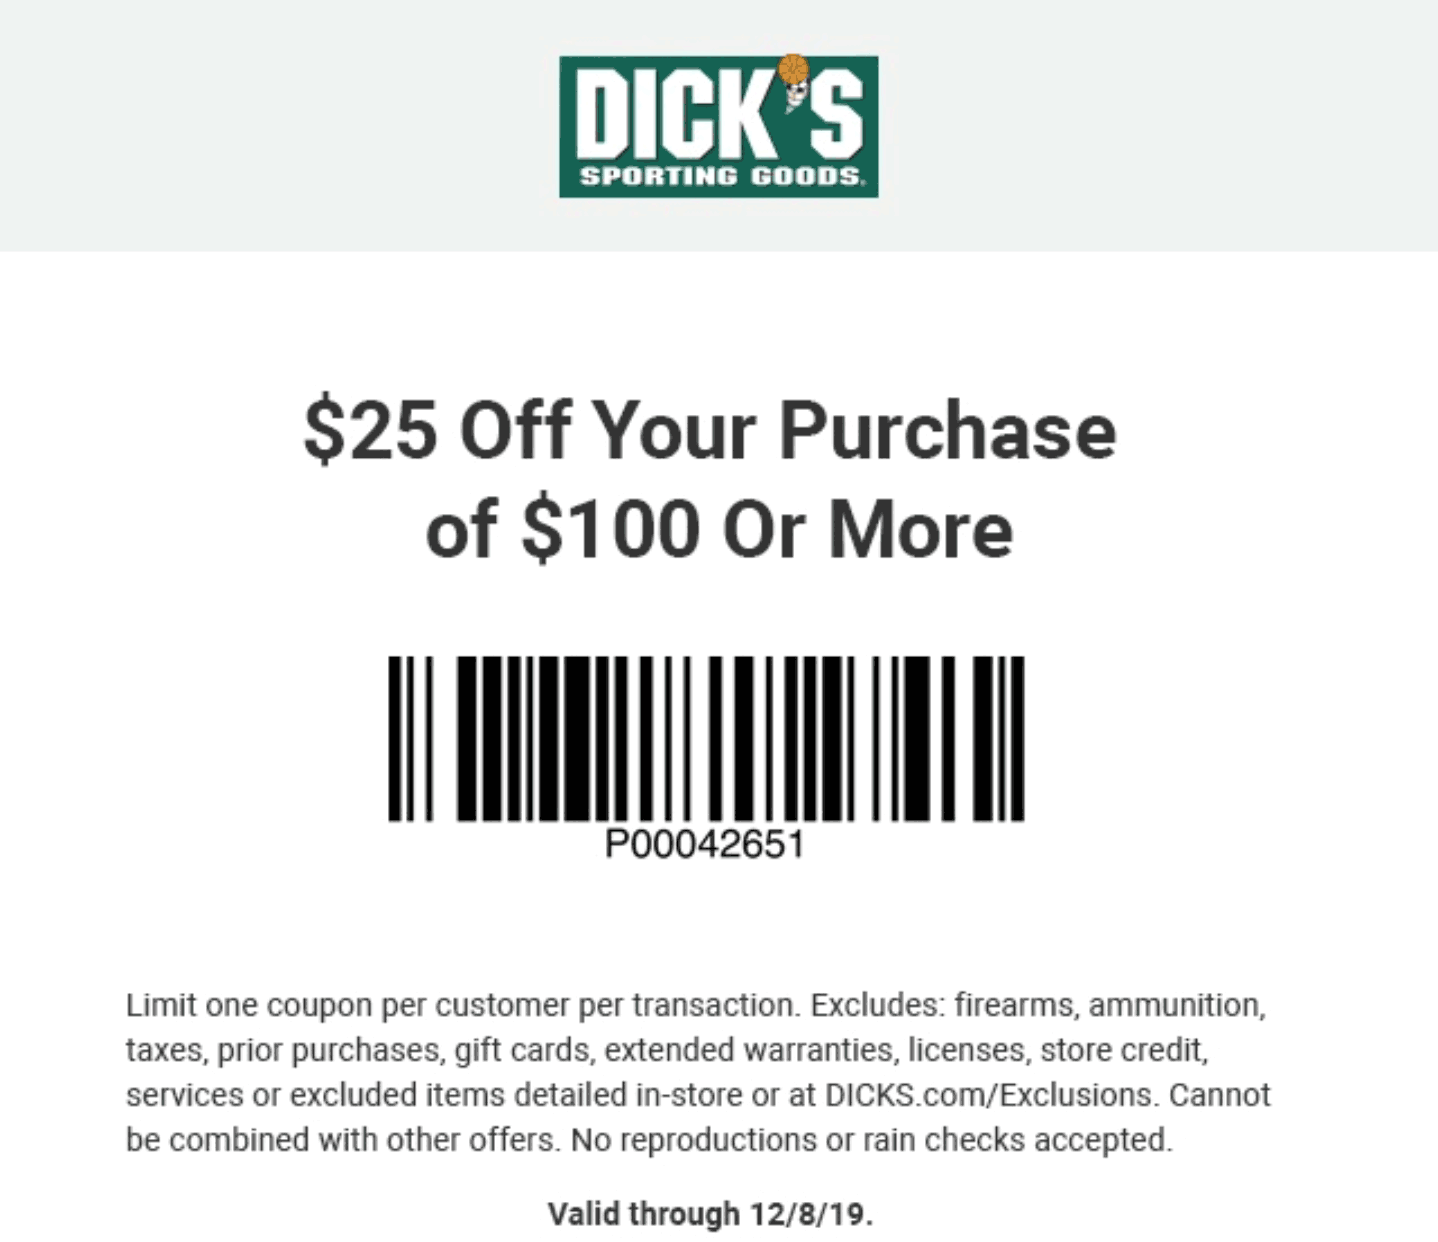 Dicks coupons & promo code for [April 2021]